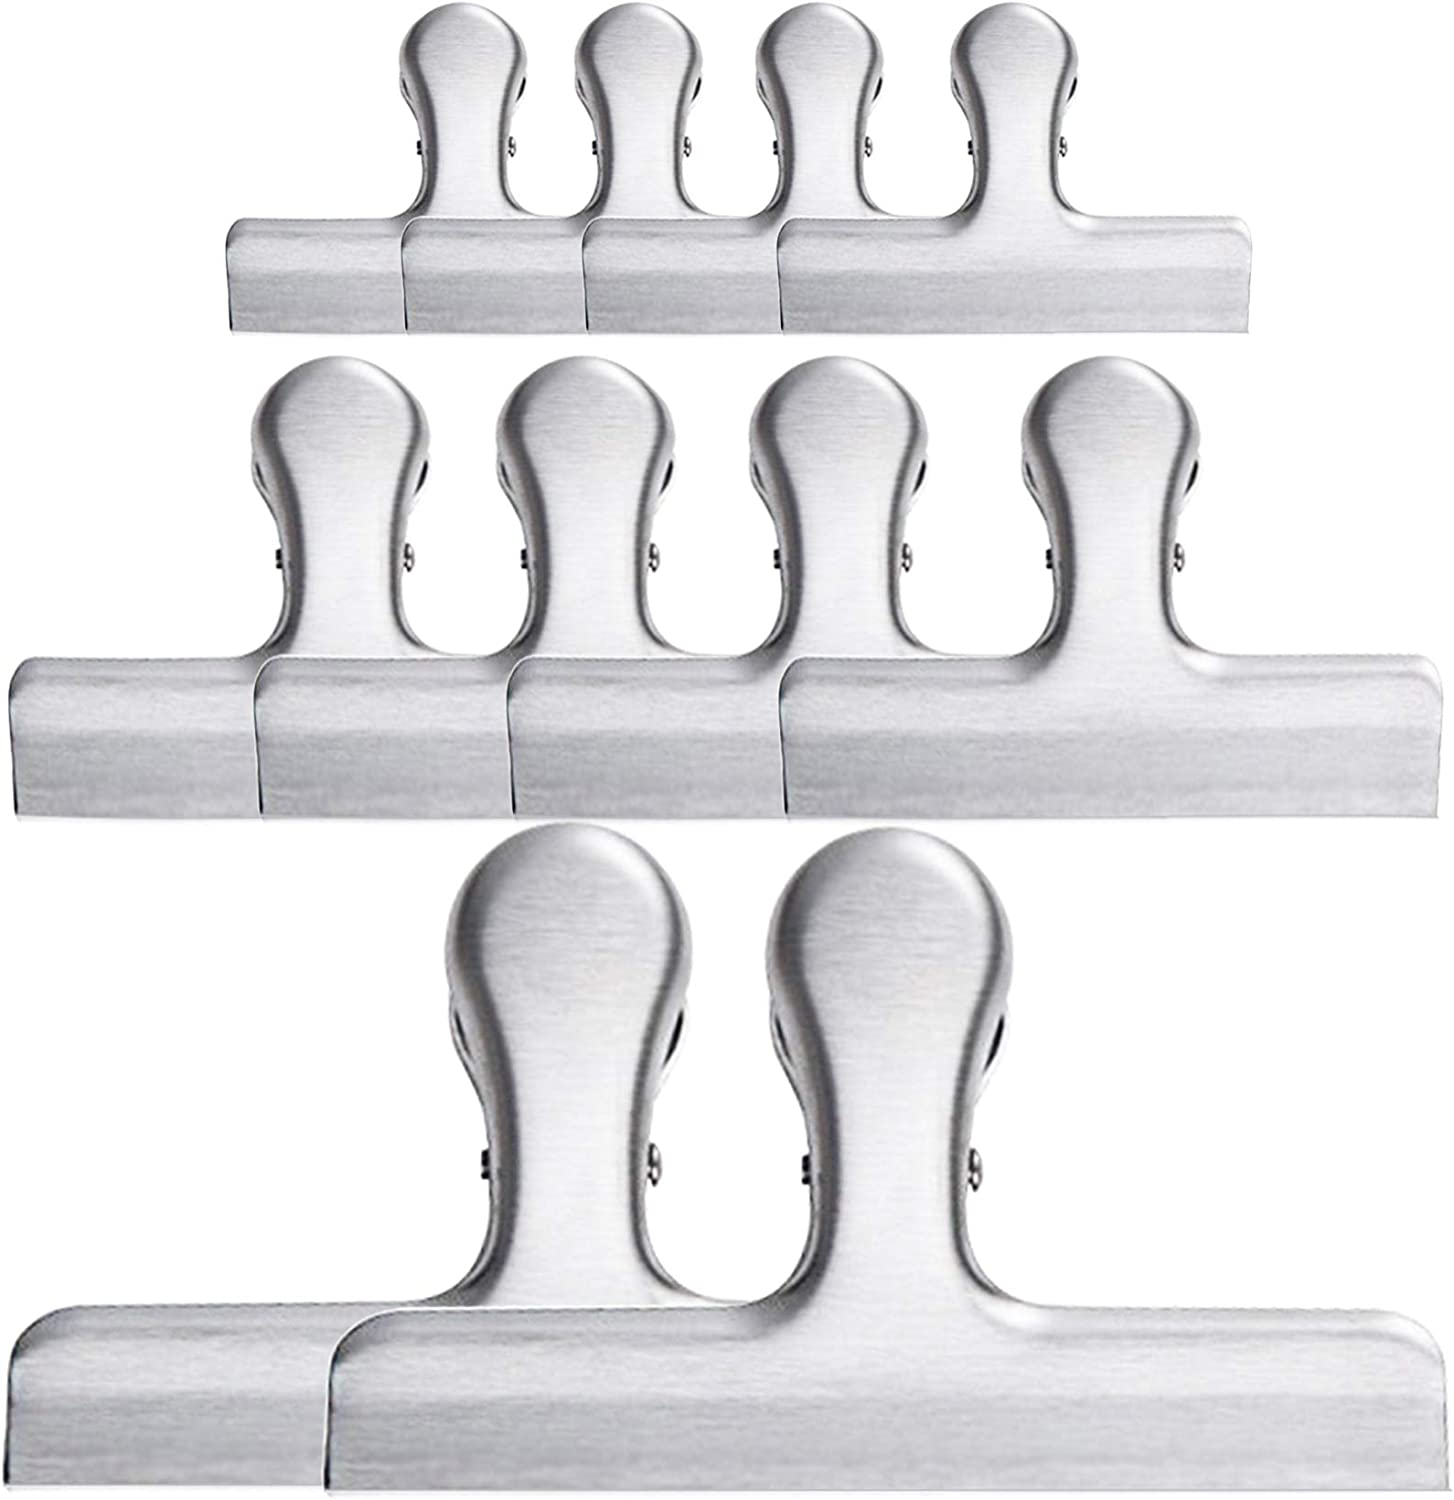 """Wingfish 10 Pack Chip Bag Clips Food Clips with 3 Sizes 4.7"""" 3"""" 1.6"""" Stainless Steel Heavy Duty Chip Clips for Food Package, Air Tight Seal Clips for Home Kitchen Office"""